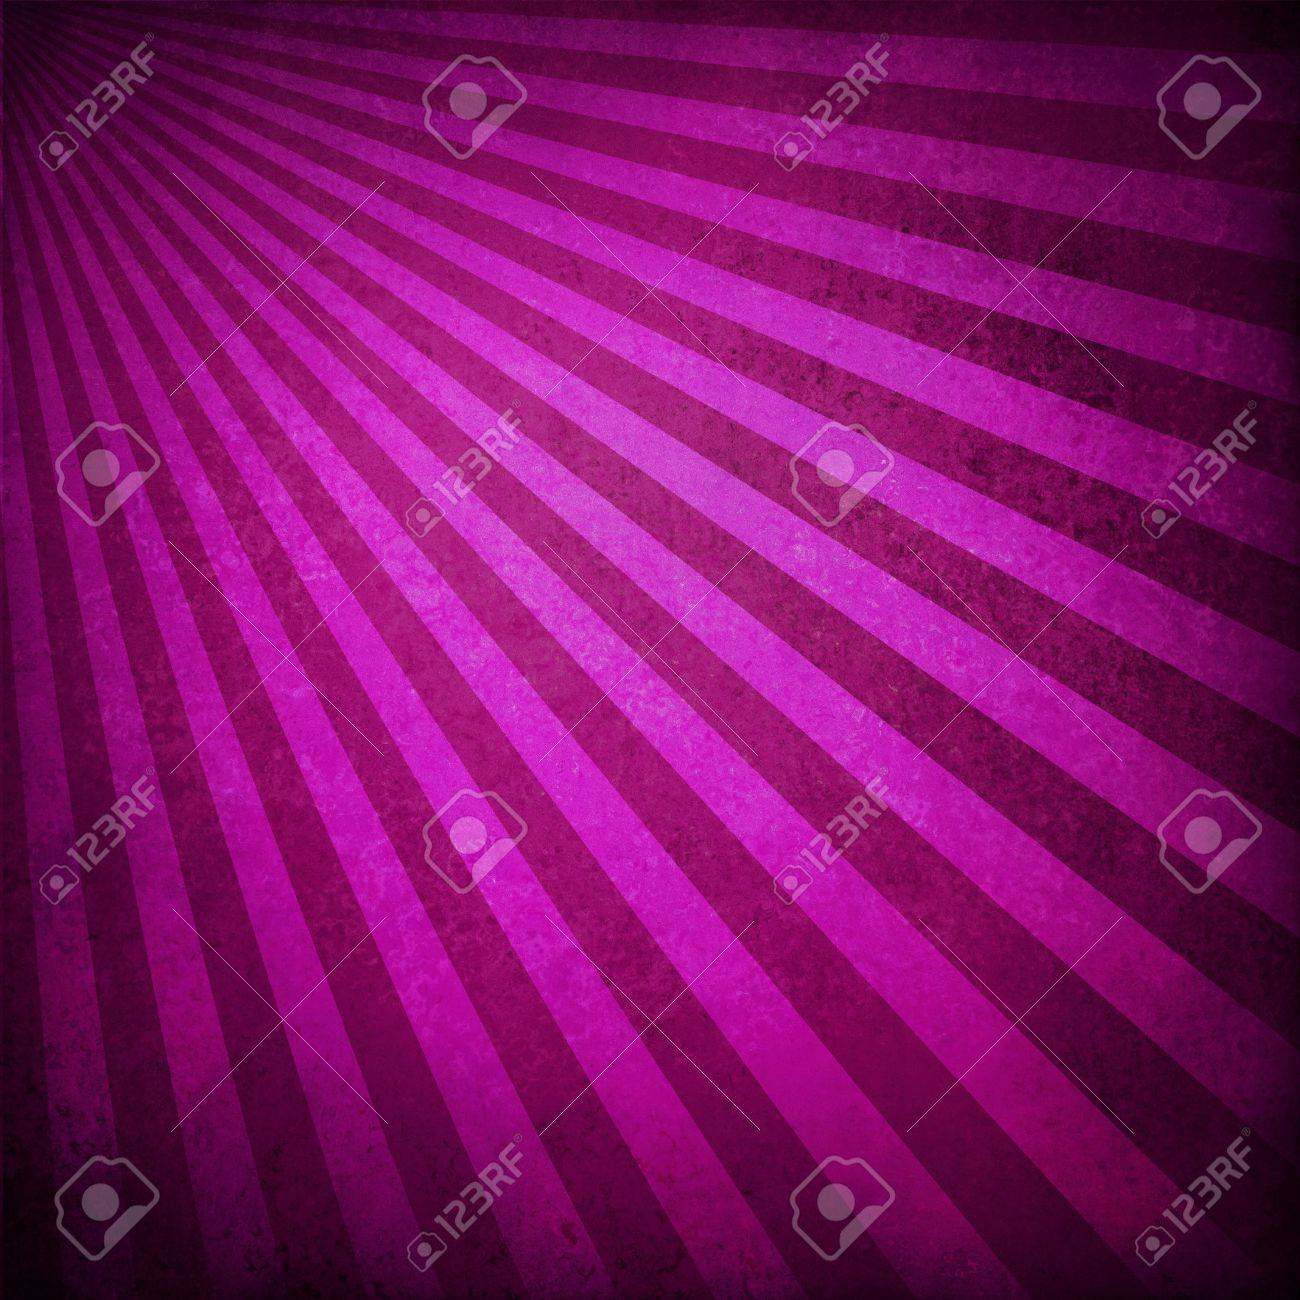 purple pink background retro striped layout, sunburst abstract background texture pattern, vintage grunge background sunrise design, old black border, bright colorful fun paper, valentine background Stock Photo - 18916055